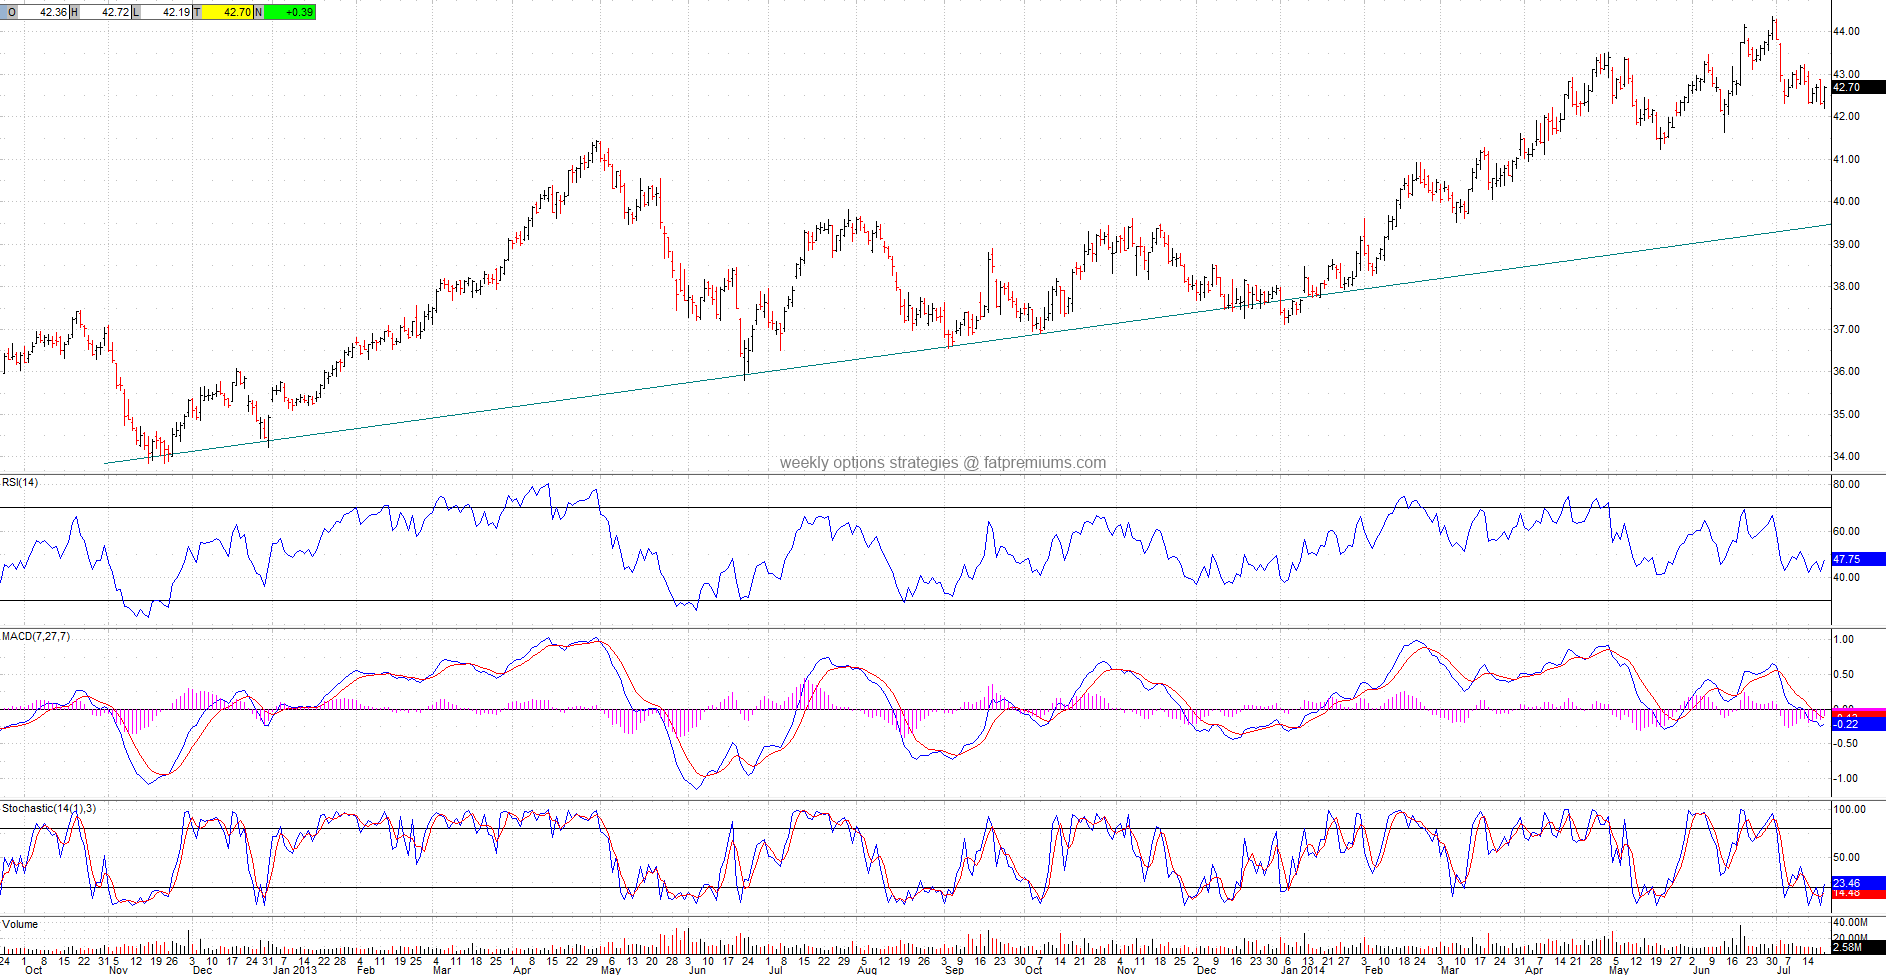 Utilities Select Sector SPDR (NYSEARCA:XLU) Daily Chart (2014-07-18) Bullish